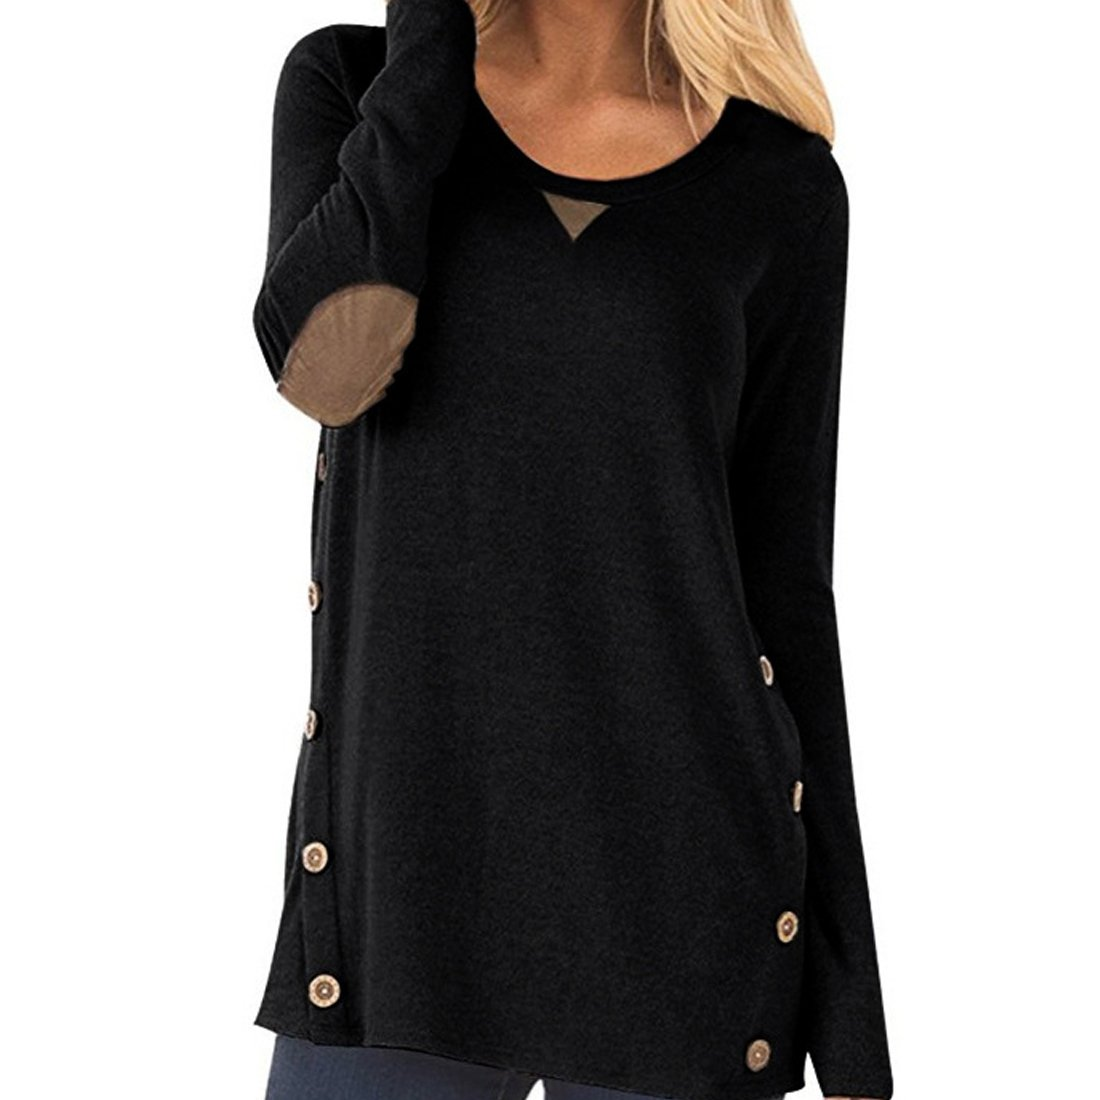 XRDSS Women Solid Color Round Neck Casual Loose Long-Sleevee Sweater T-Shirt top (l, Black)